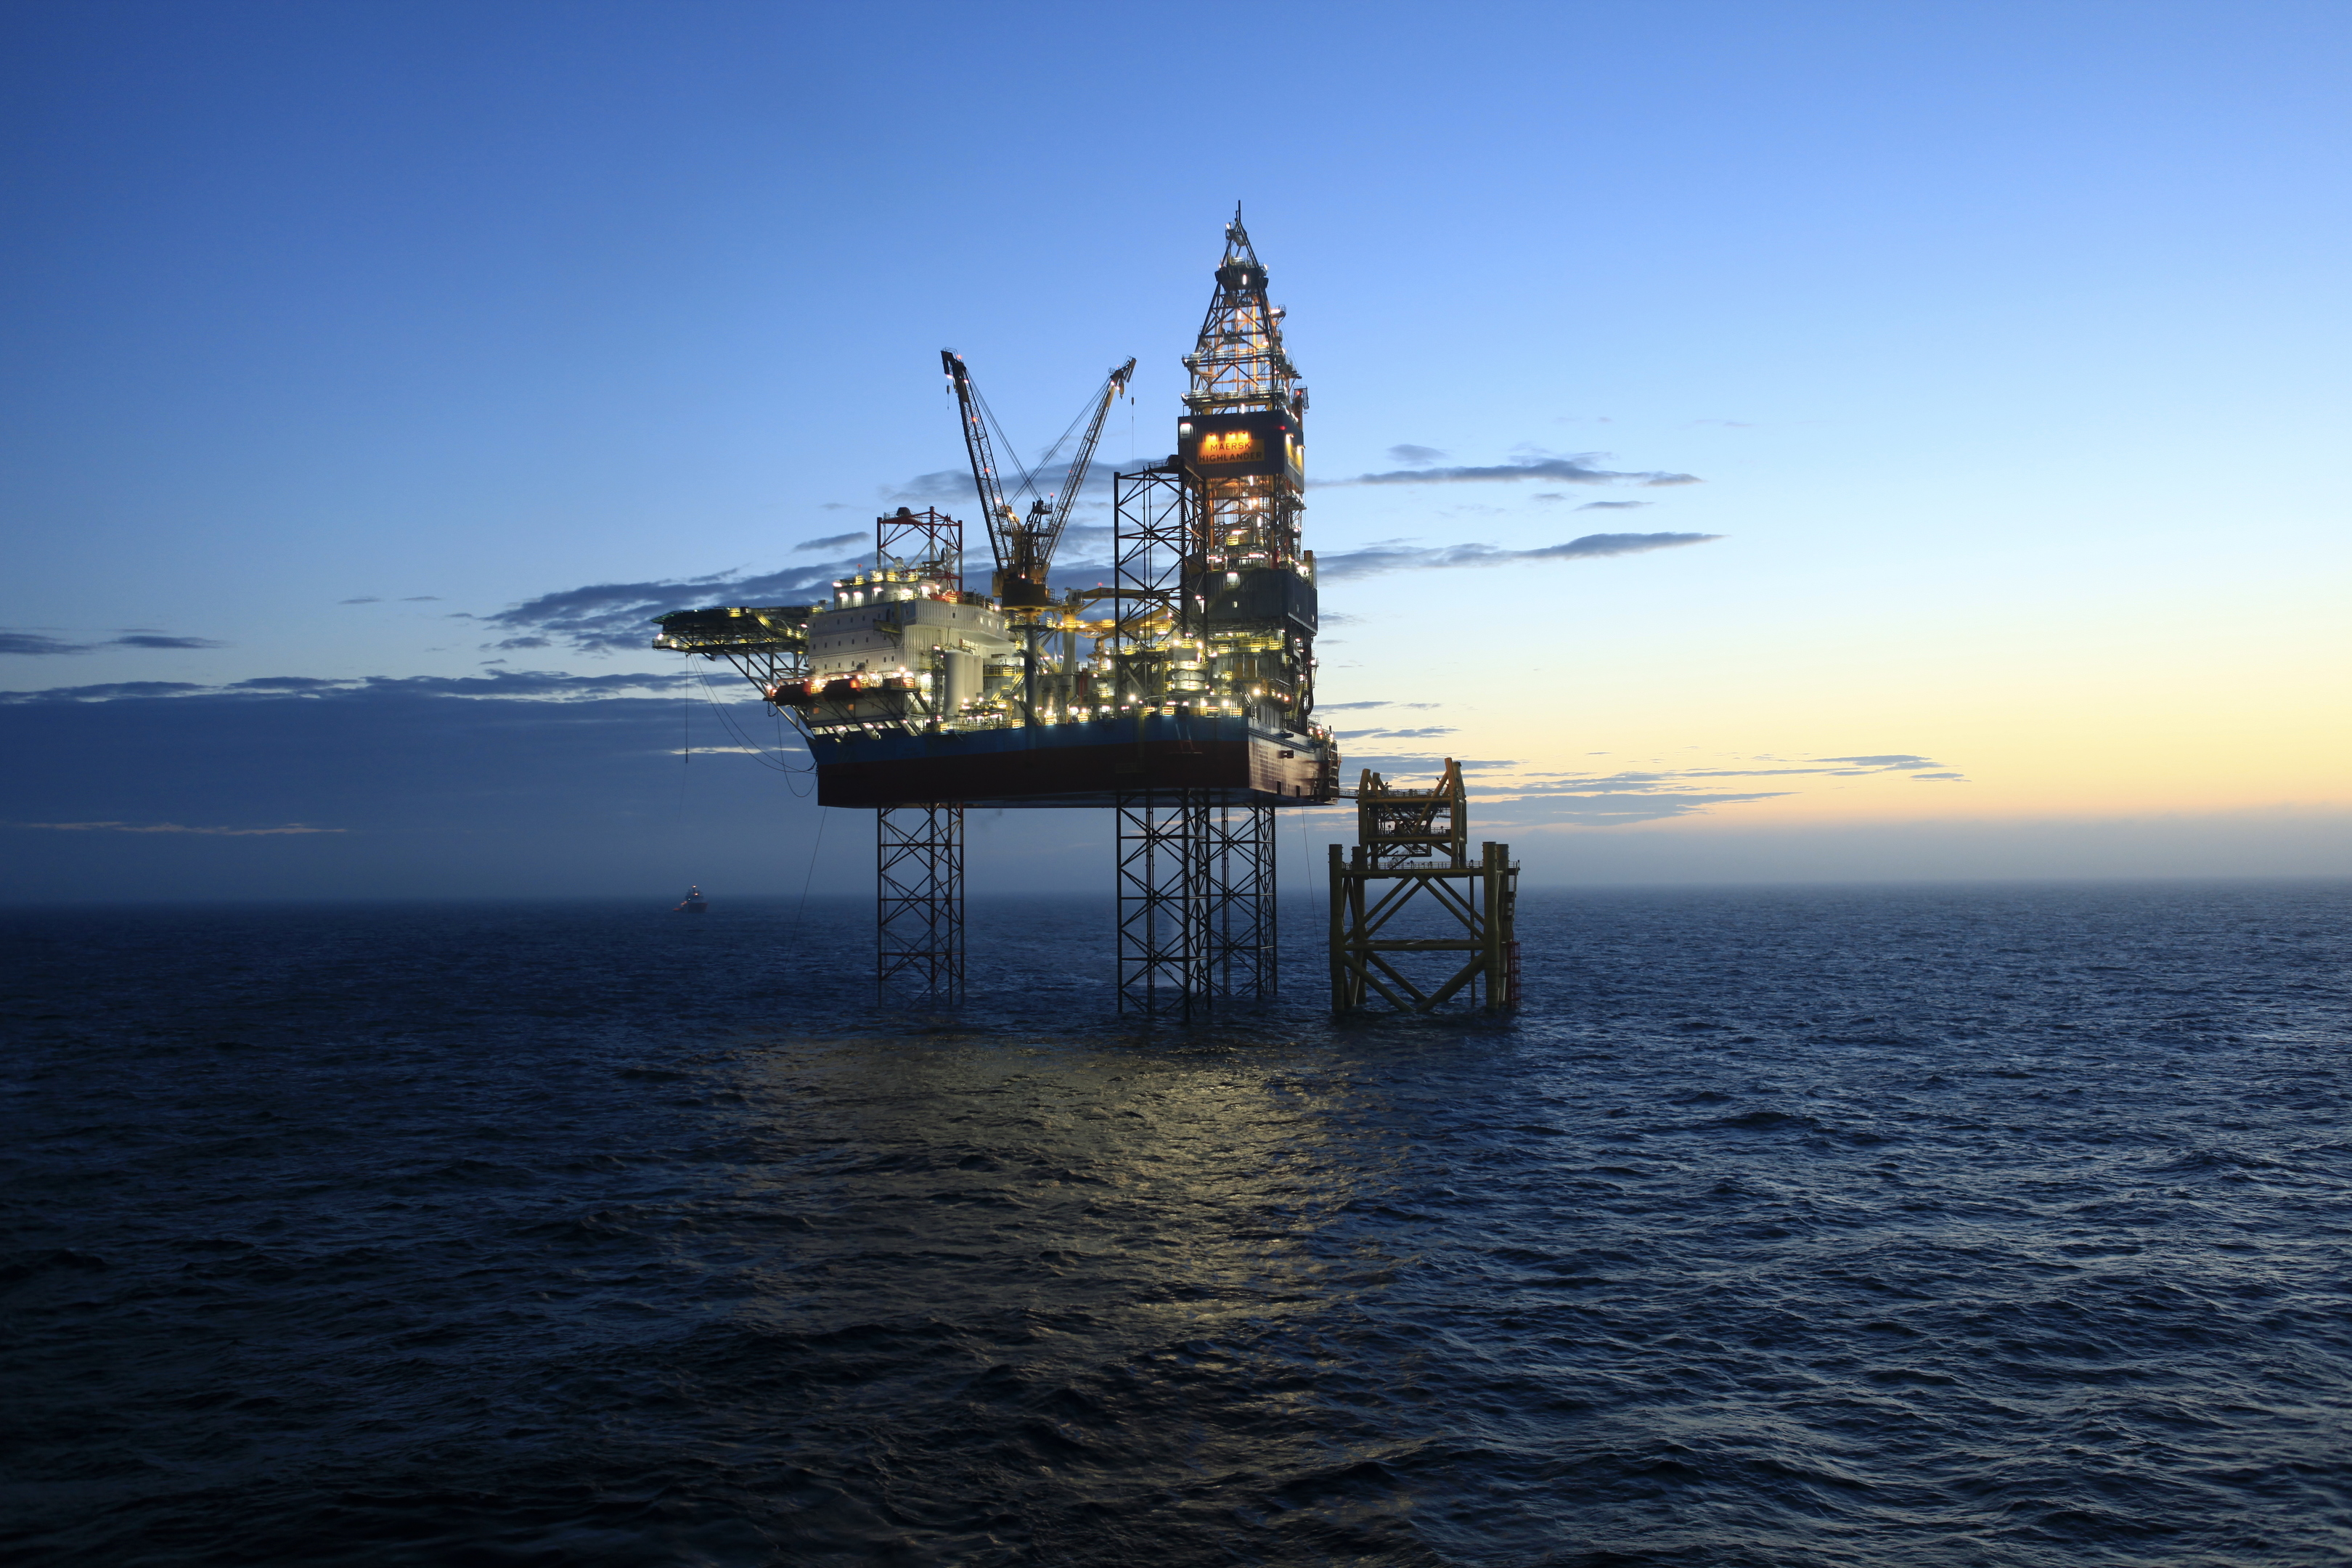 CLNR hopes the Shell deal will propel its growth in the North Sea